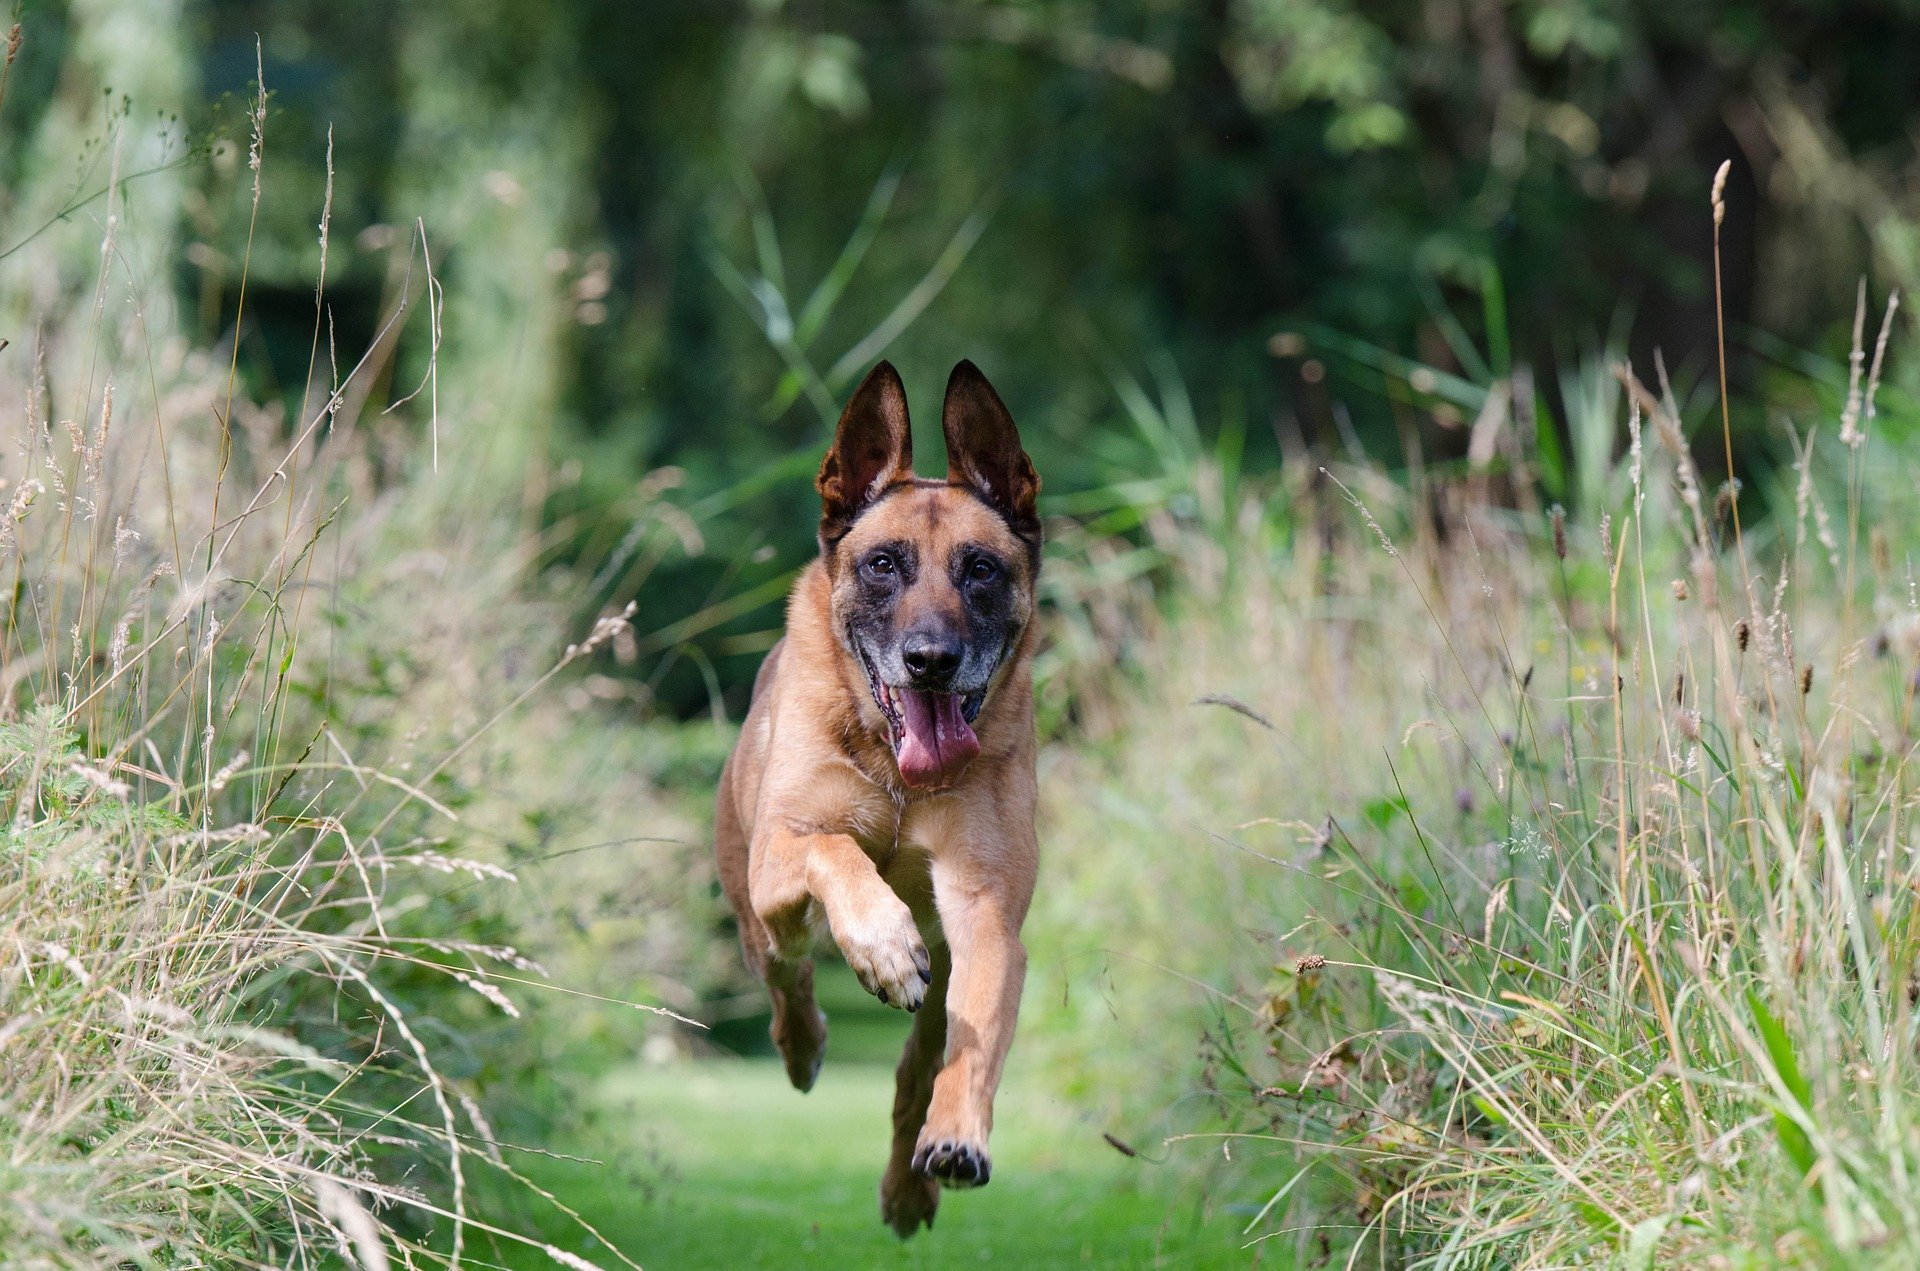 Dog breeds: Belgian Malinois dog, origin and personality